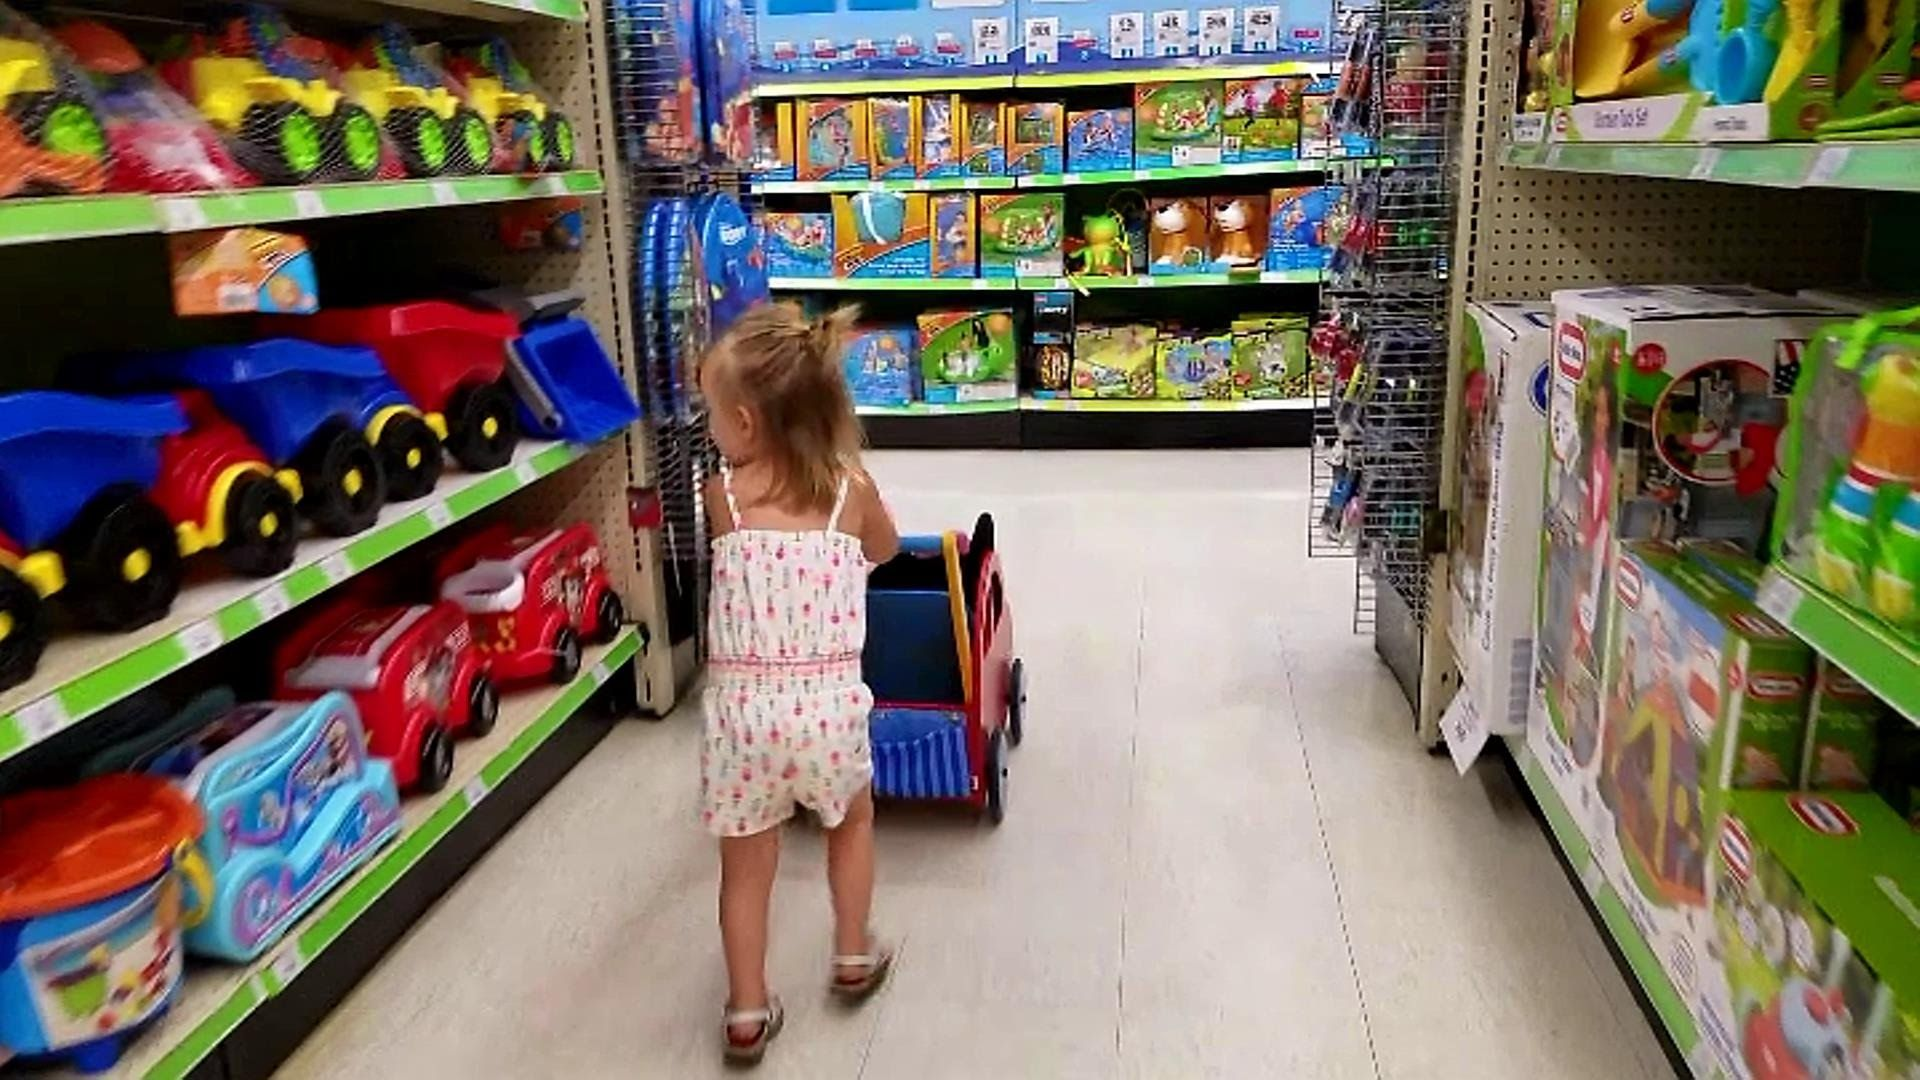 Cute Little Girl Toys R Us Shopping With Peppa Pig and Minnie